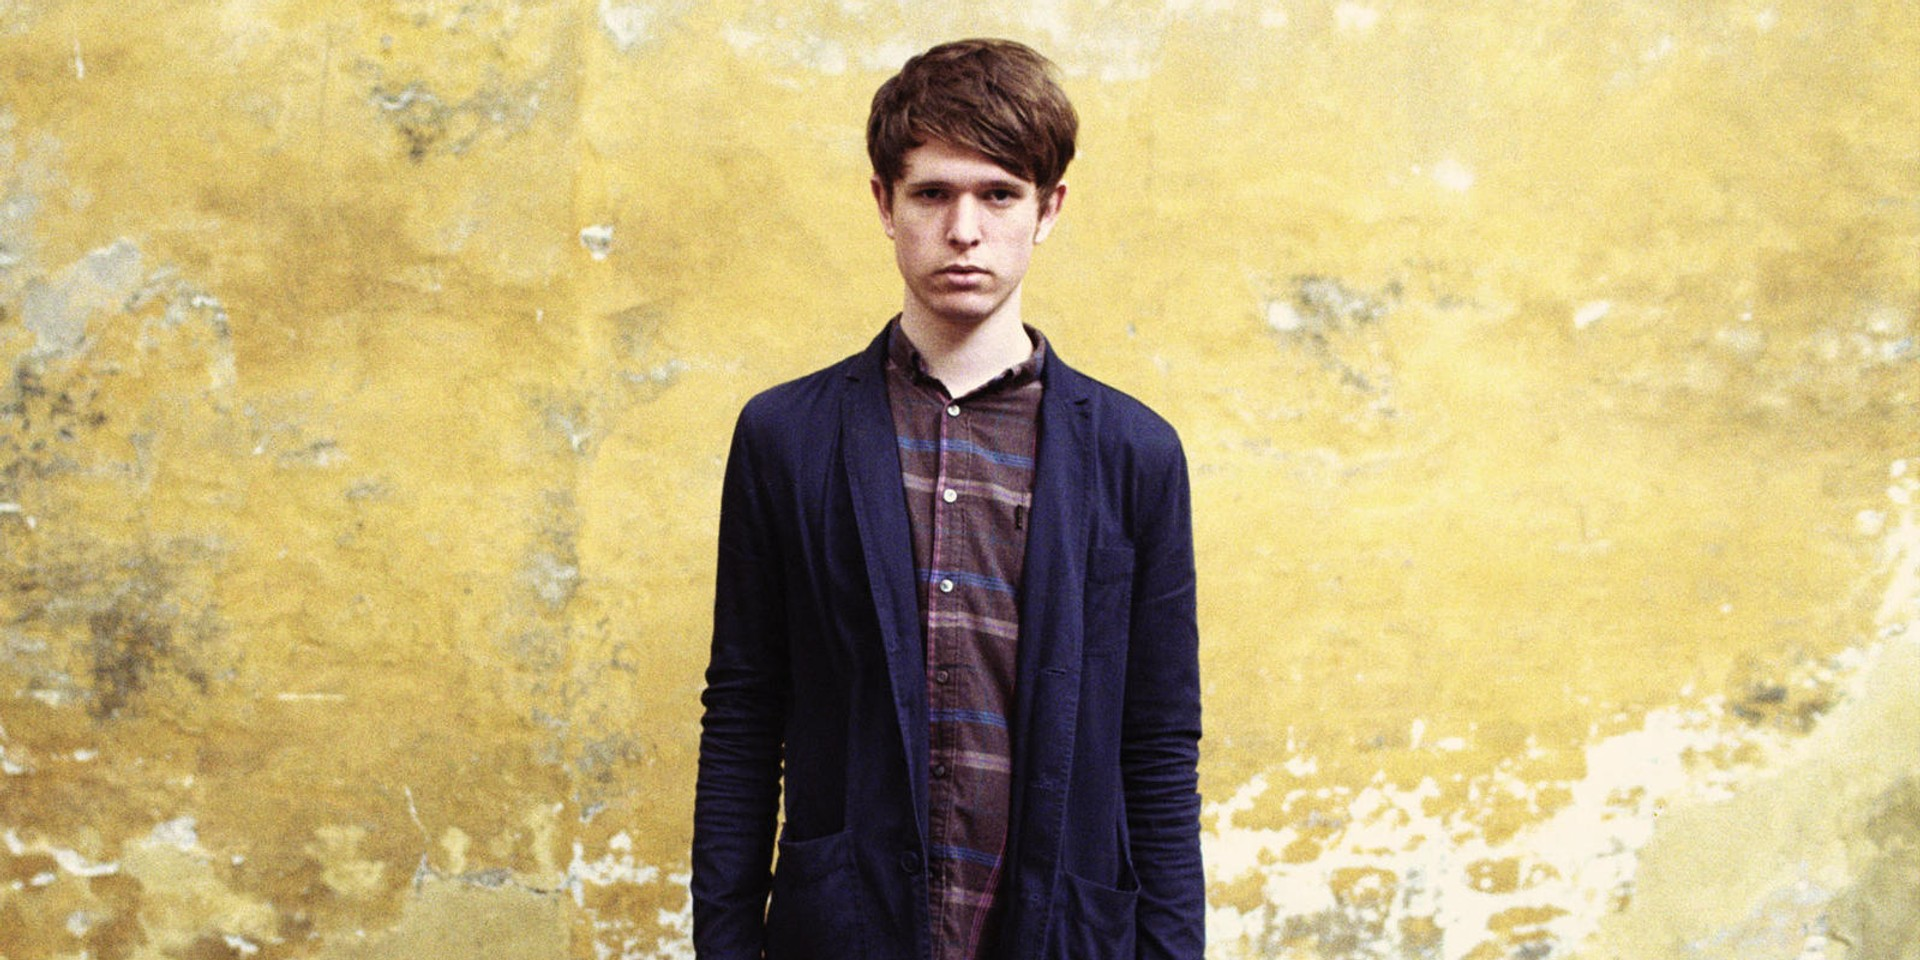 ALBUM REVIEW: James Blake - The Colour In Anything